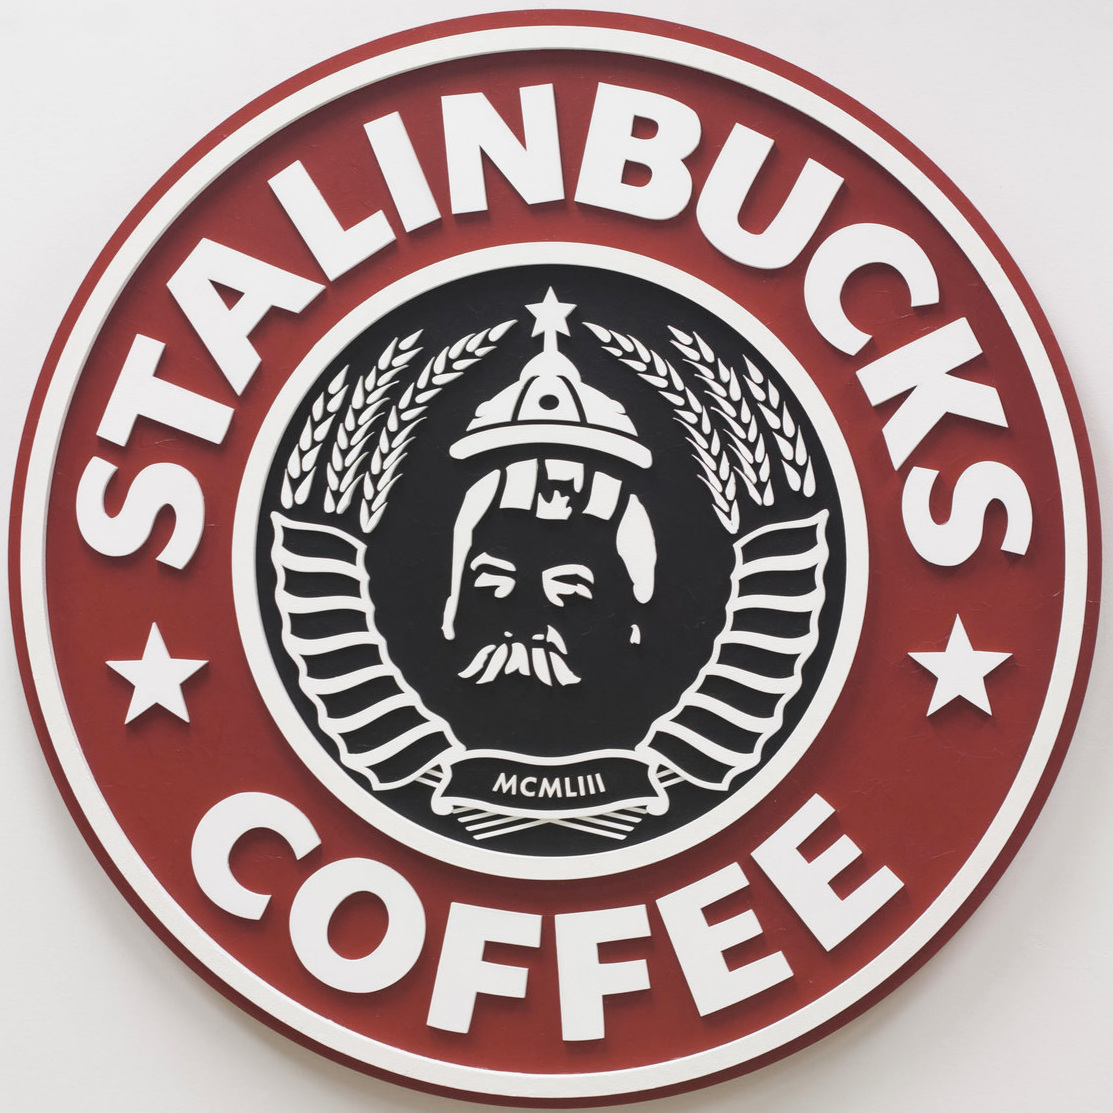 Stalinbucks (2012)    Stalinbucks  reinterprets a familiar American brand in the form of a Russian and Soviet political and nationalist symbol. Yet, as much as this parody is meant to manifest a sense of unease, it also satirizes similarities between commercial marketing and messaging, and political propaganda.